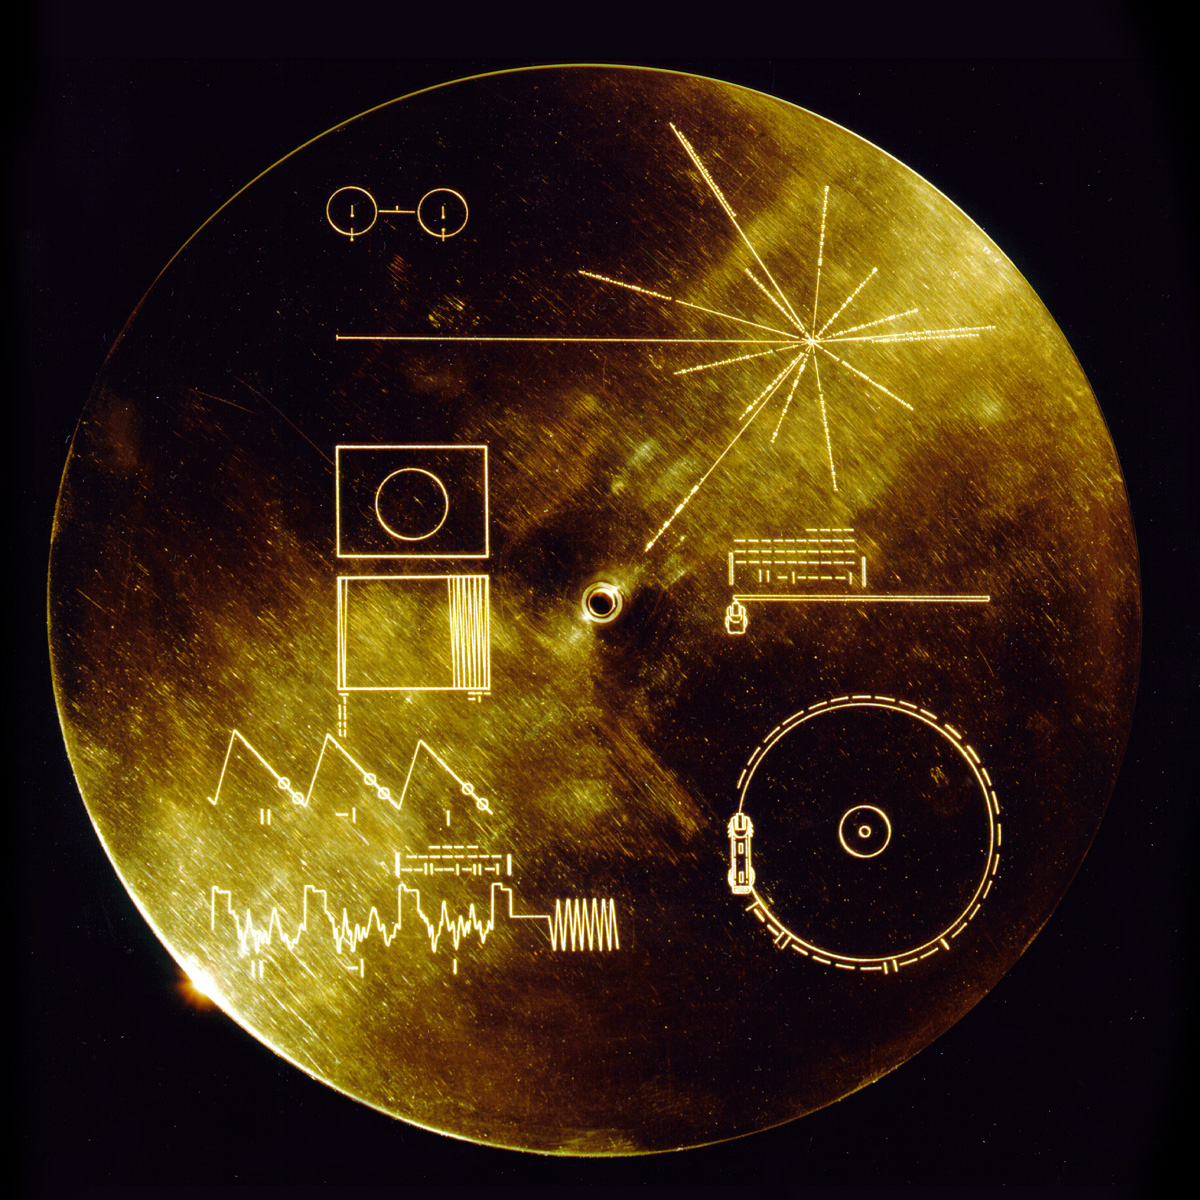 voyager 2 plaque diagram - photo #32